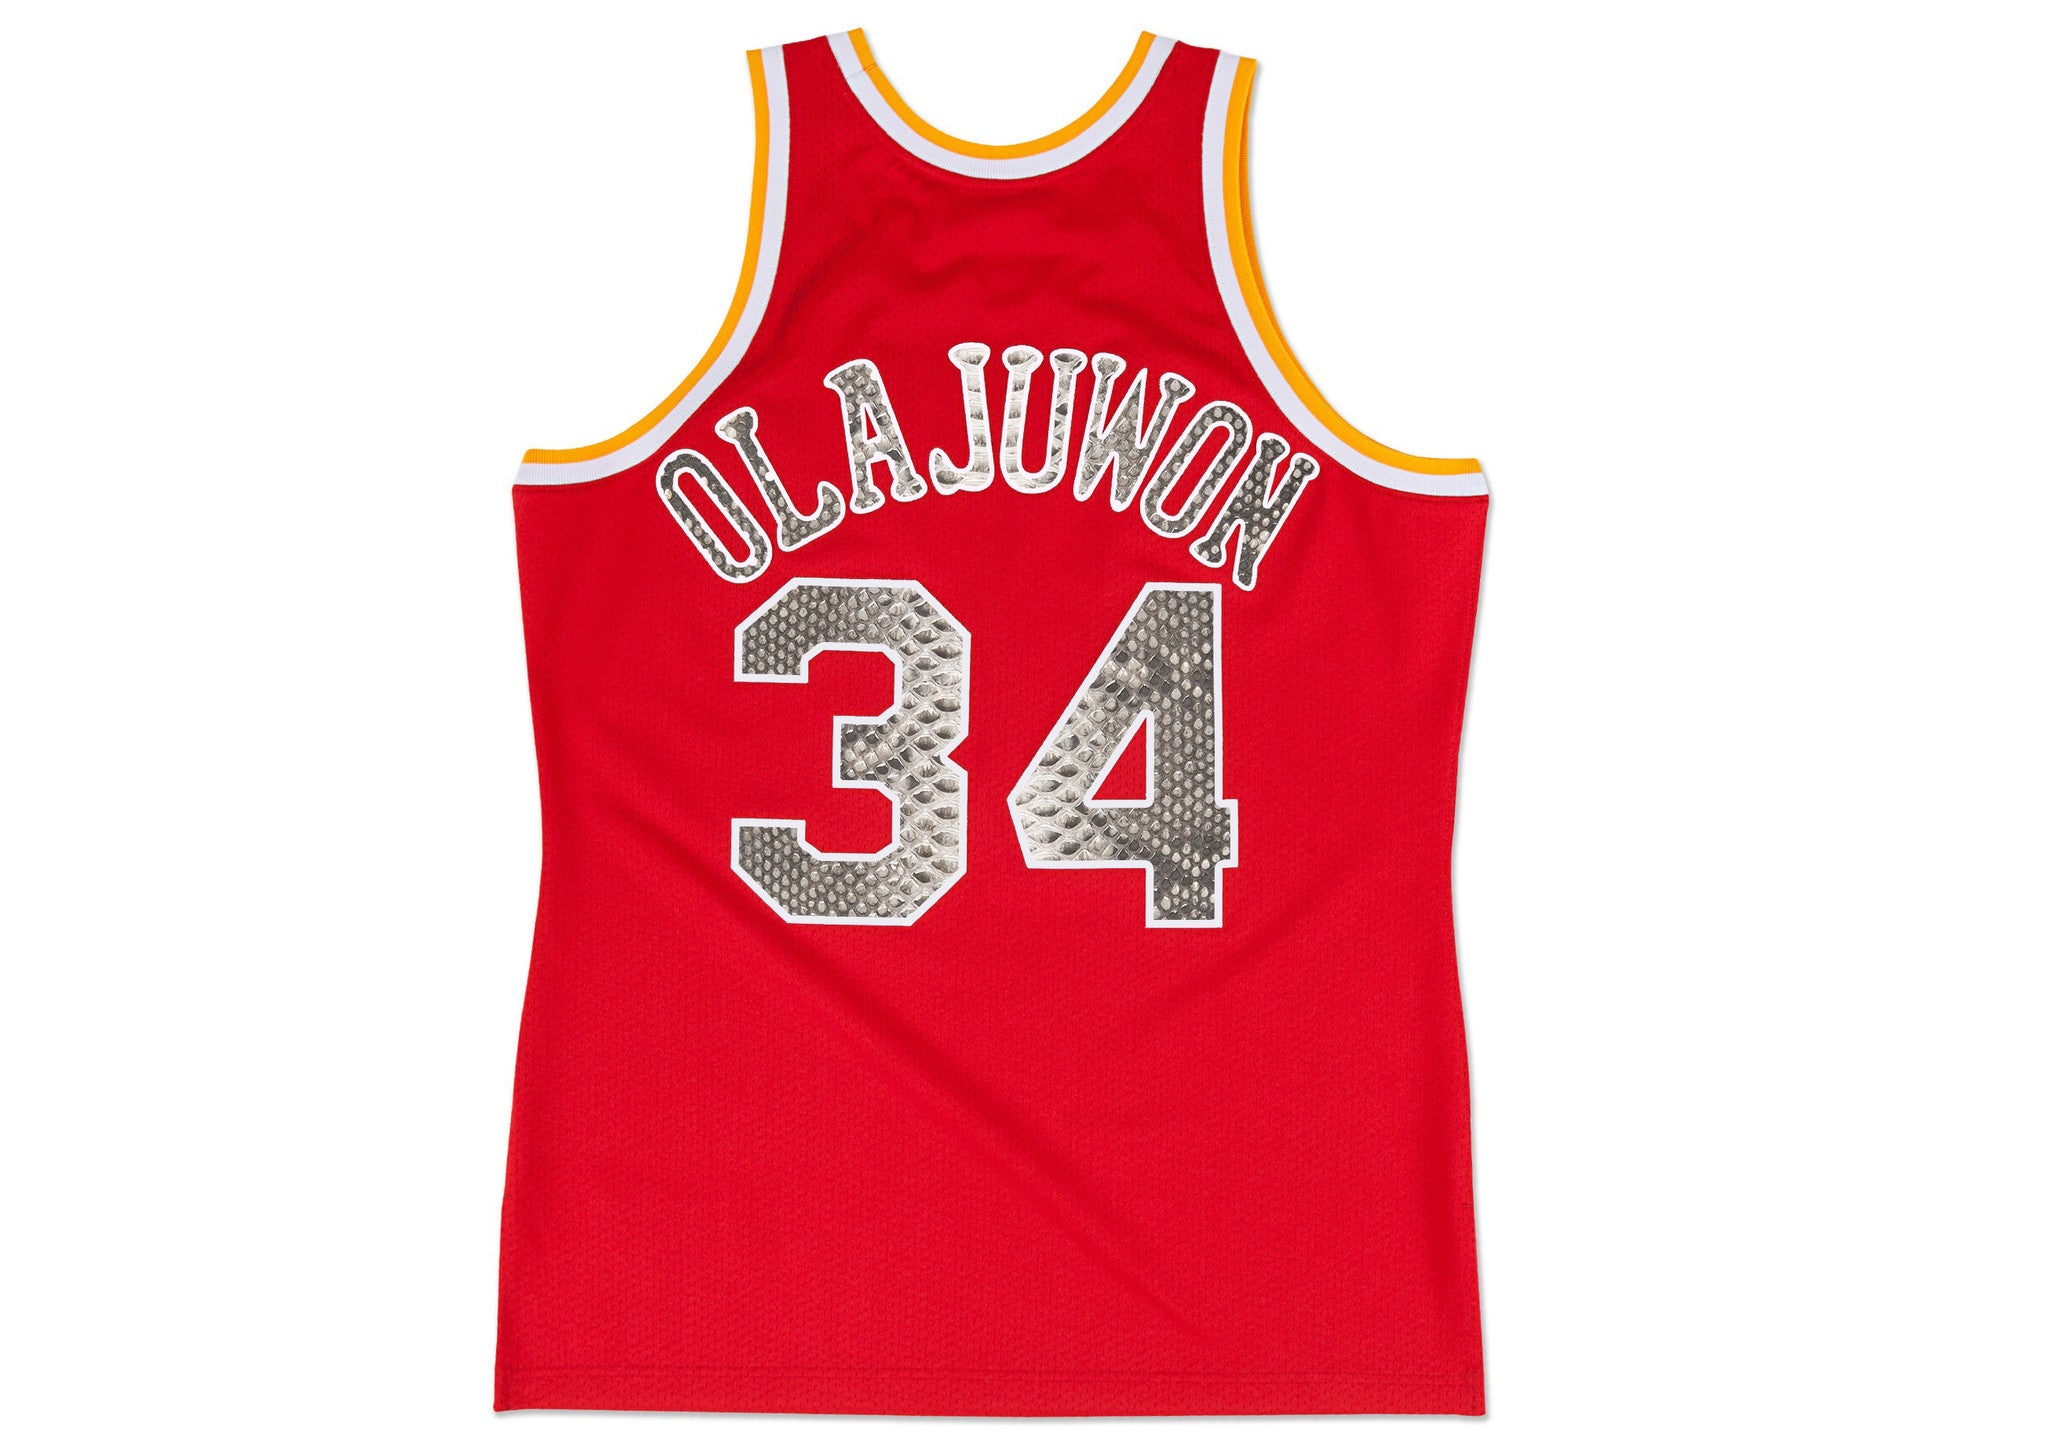 Mitchell & Ness Hakeem Olajuwon 1993-1994 Houston Rockets Python Jersey